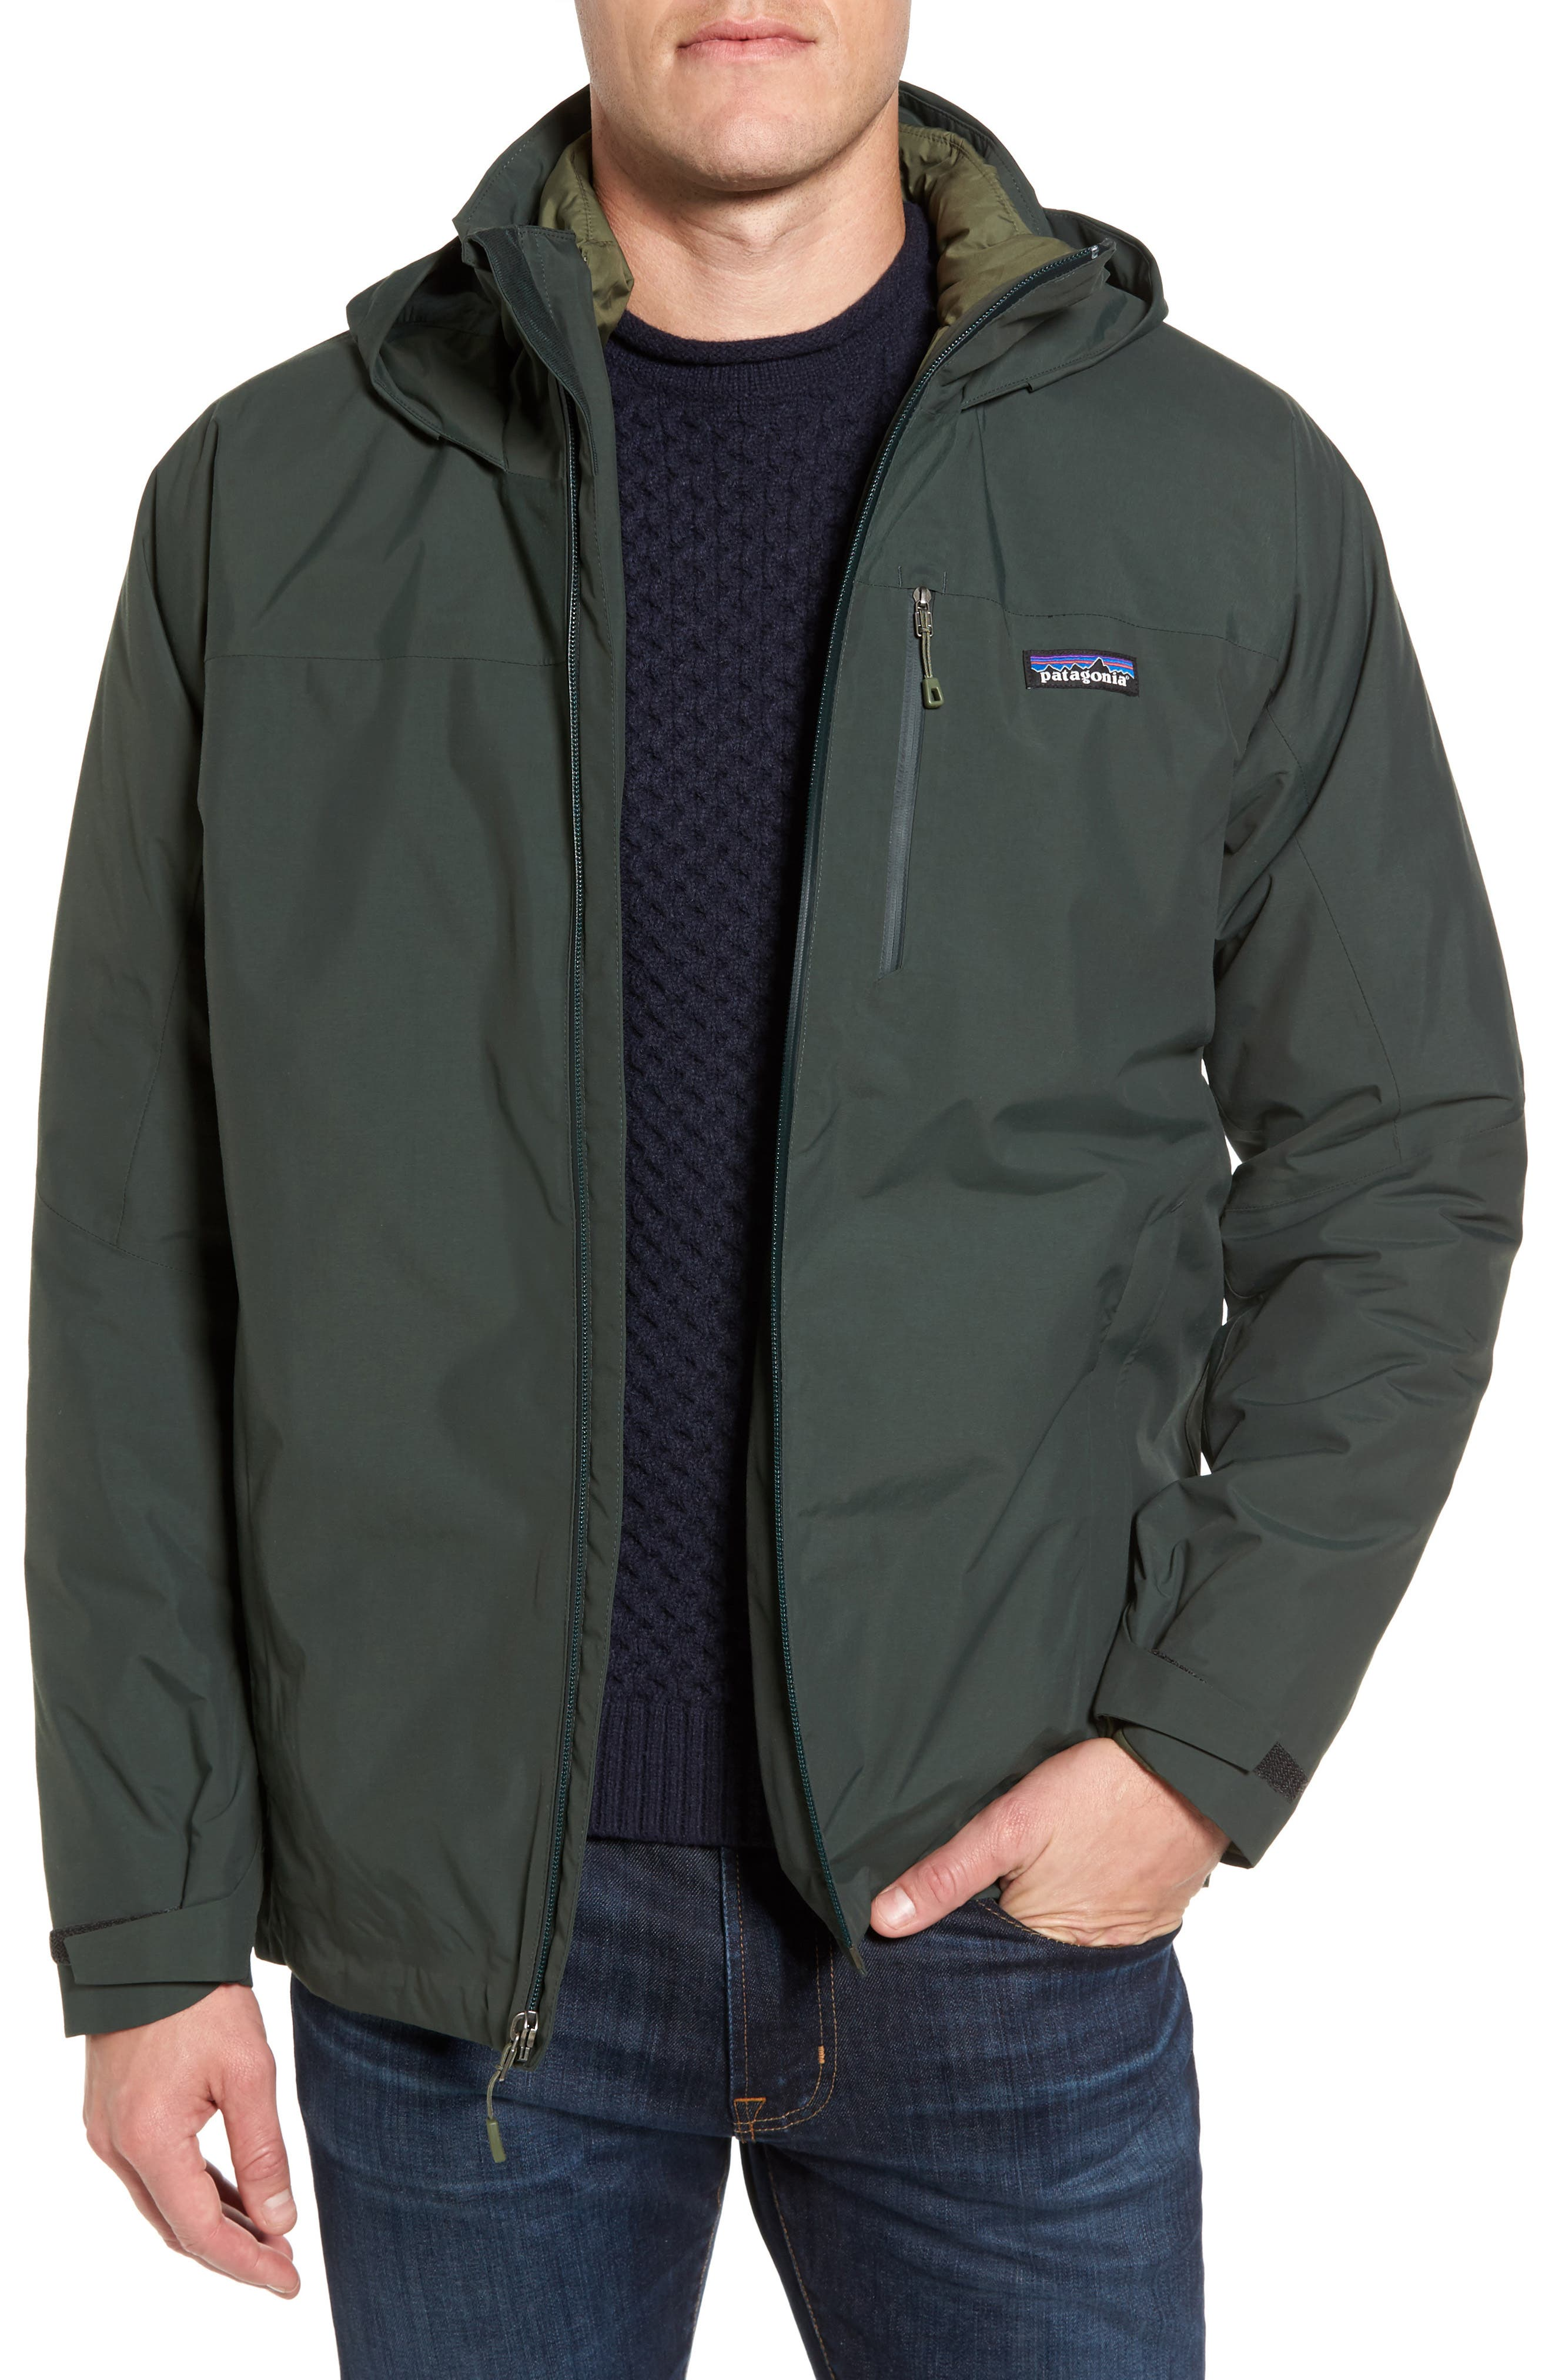 Windsweep 3-in-1 Jacket,                             Main thumbnail 1, color,                             002